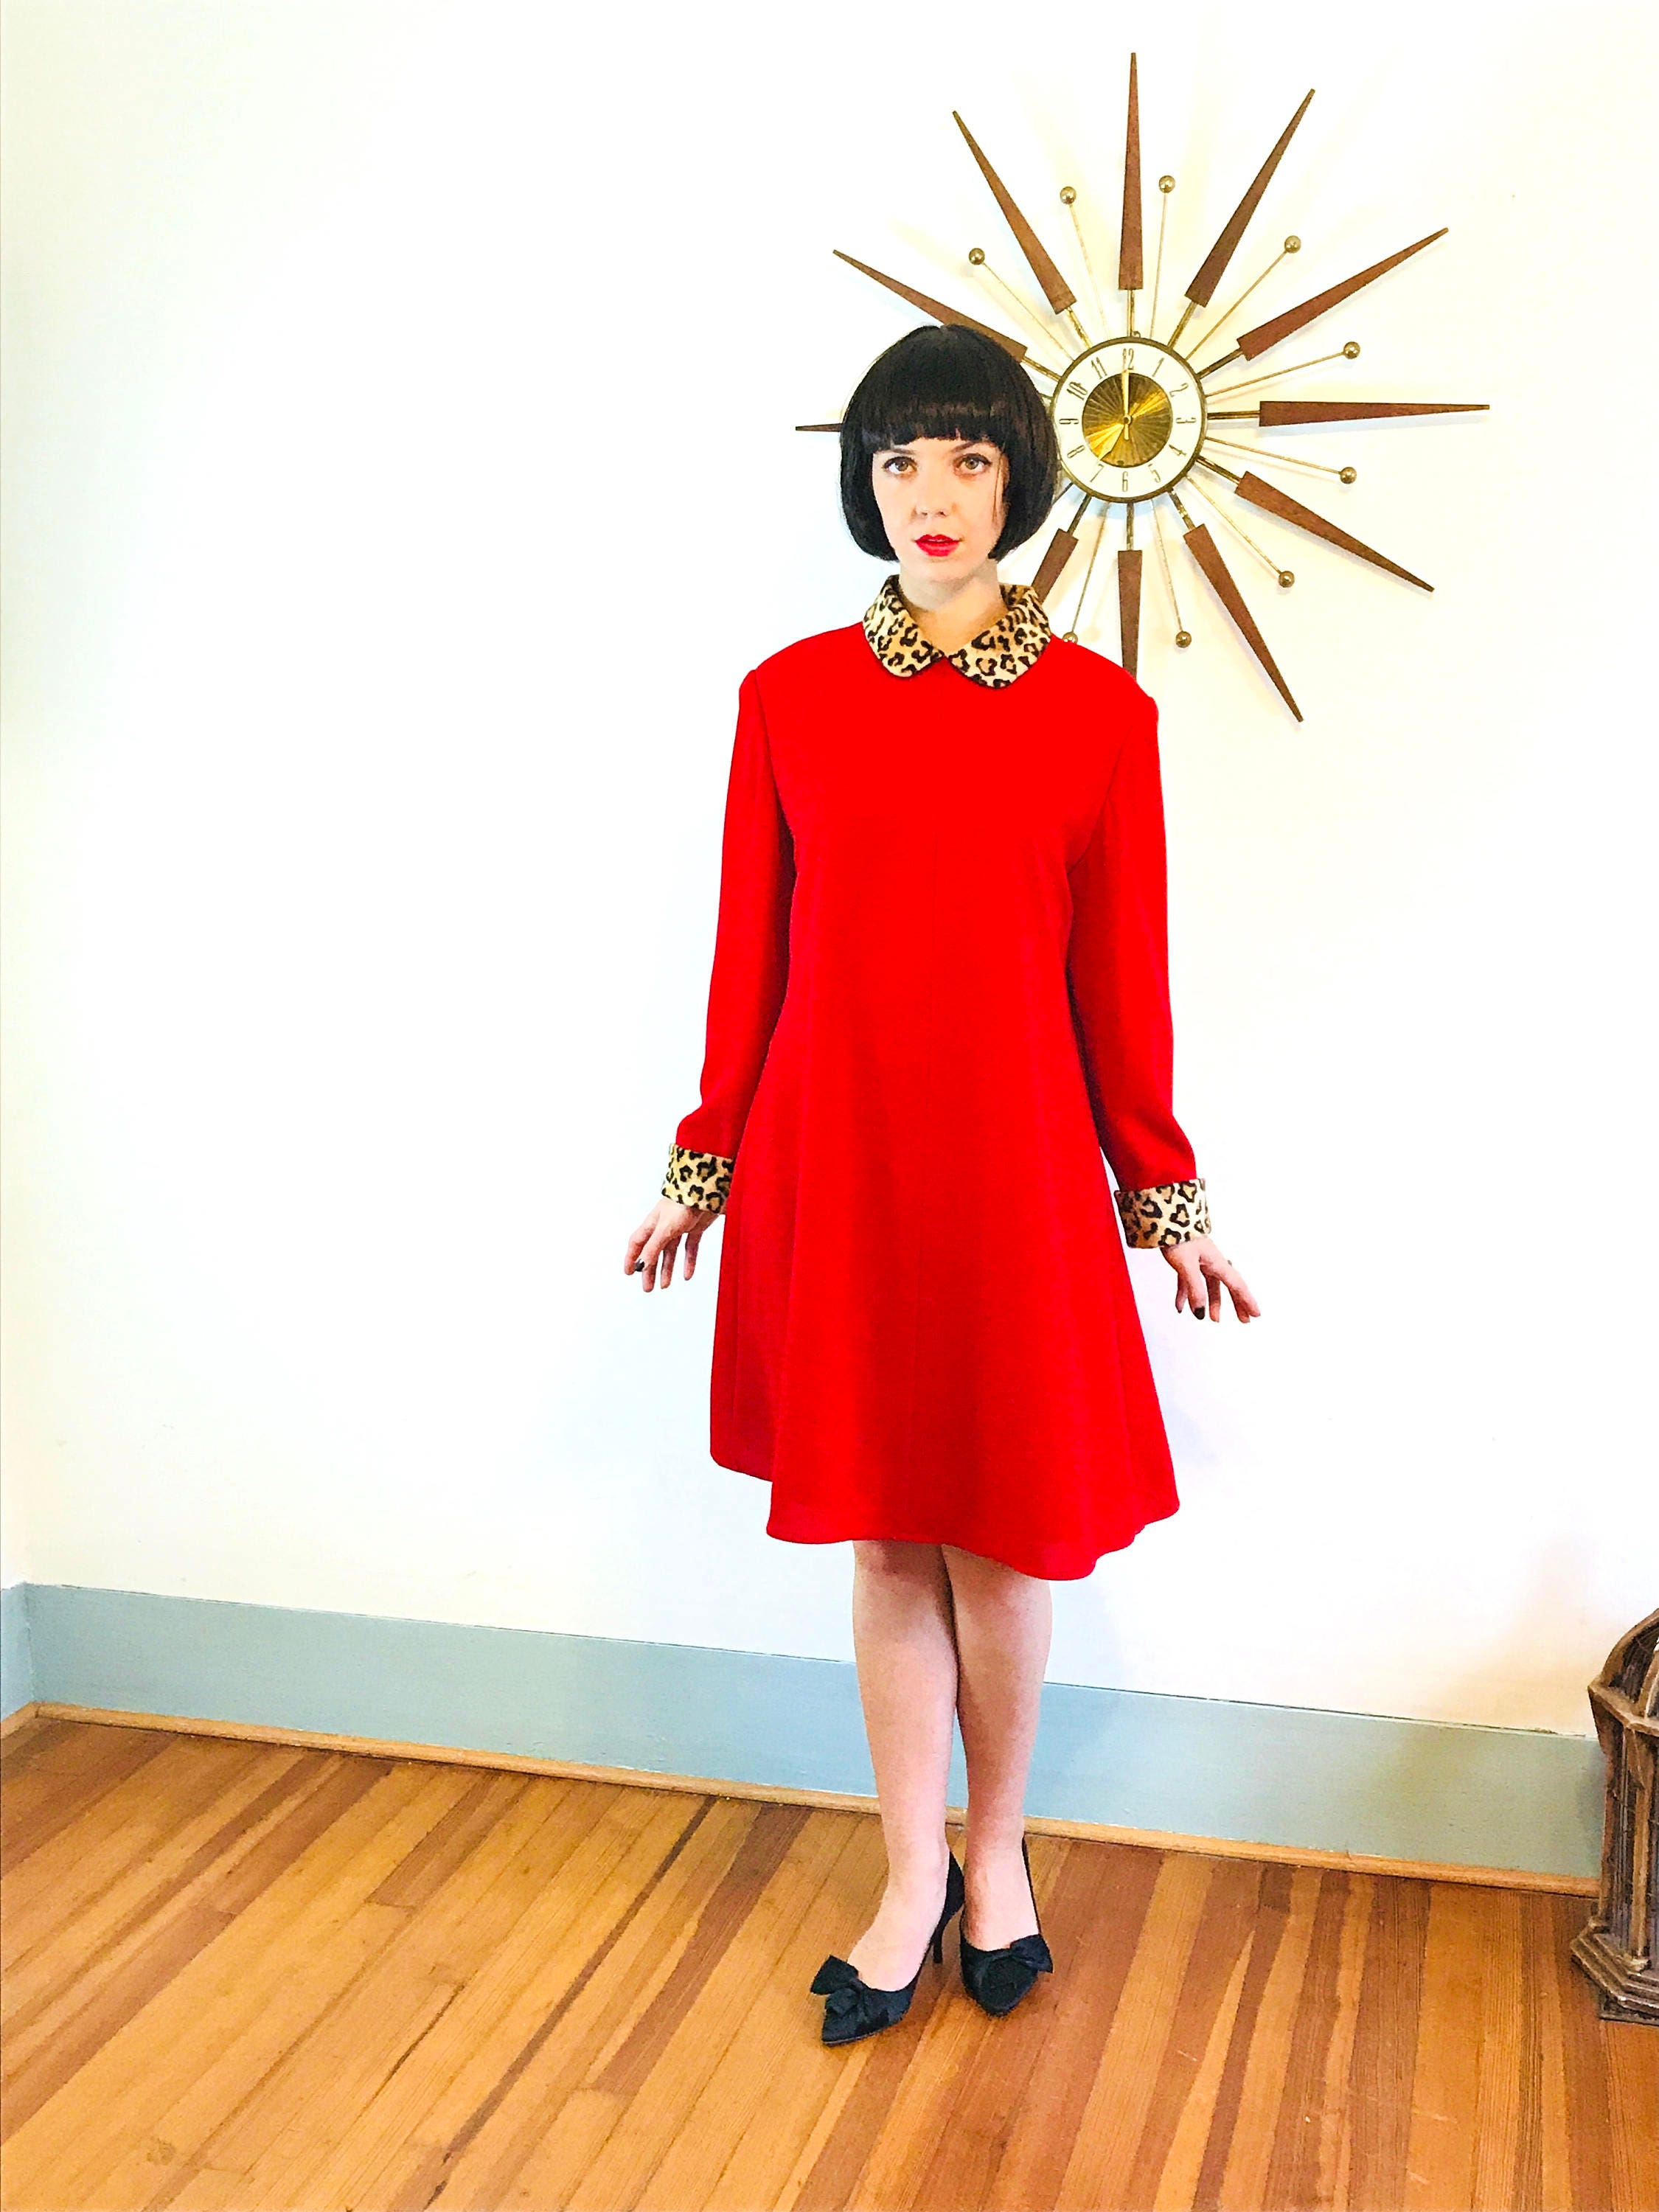 Red tent dress Leopard trim dress Red mini dress A-Line Cut dress Leopard collar dress Holiday Party dress Plus Size Dress Sz 14 2XL  sc 1 st  Posies For Lulu Vintage & Red tent dress Leopard trim dress Red mini dress A-Line Cut ...